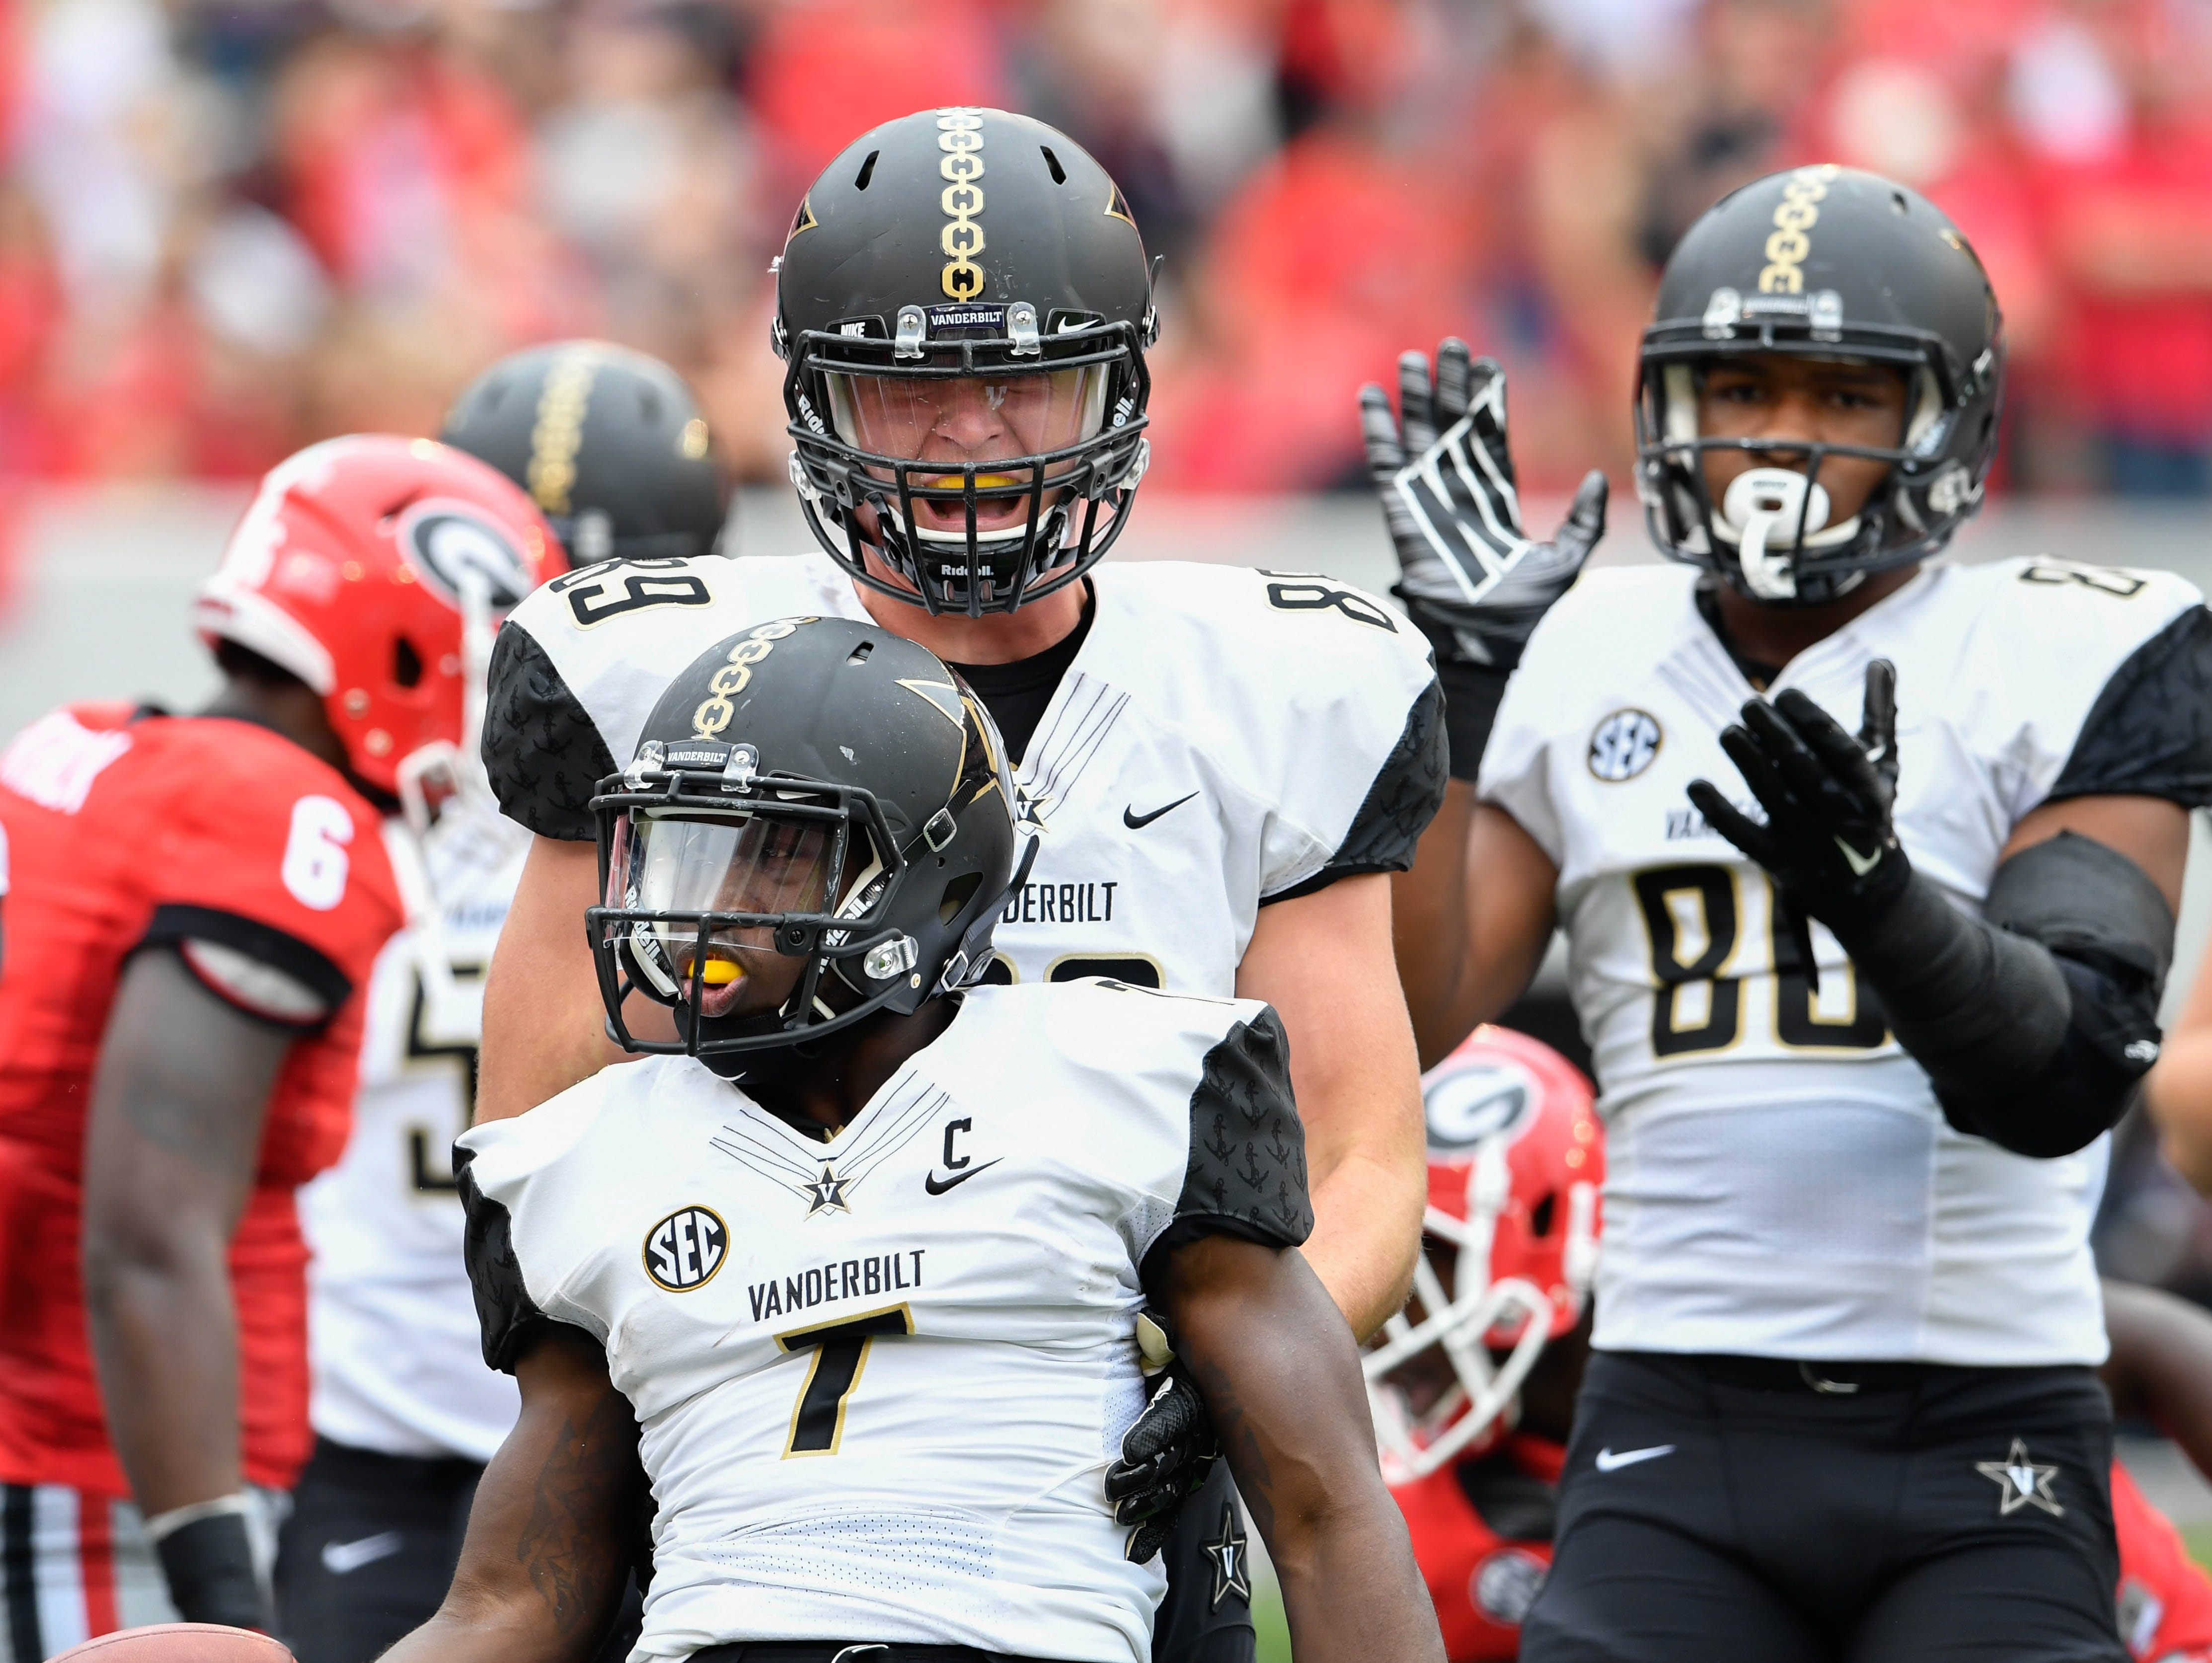 Vanderbilt running back Ralph Webb (7) celebrates with teammates after scoring against Georgia during the first quarter of last season's game Oct 15, 2016.